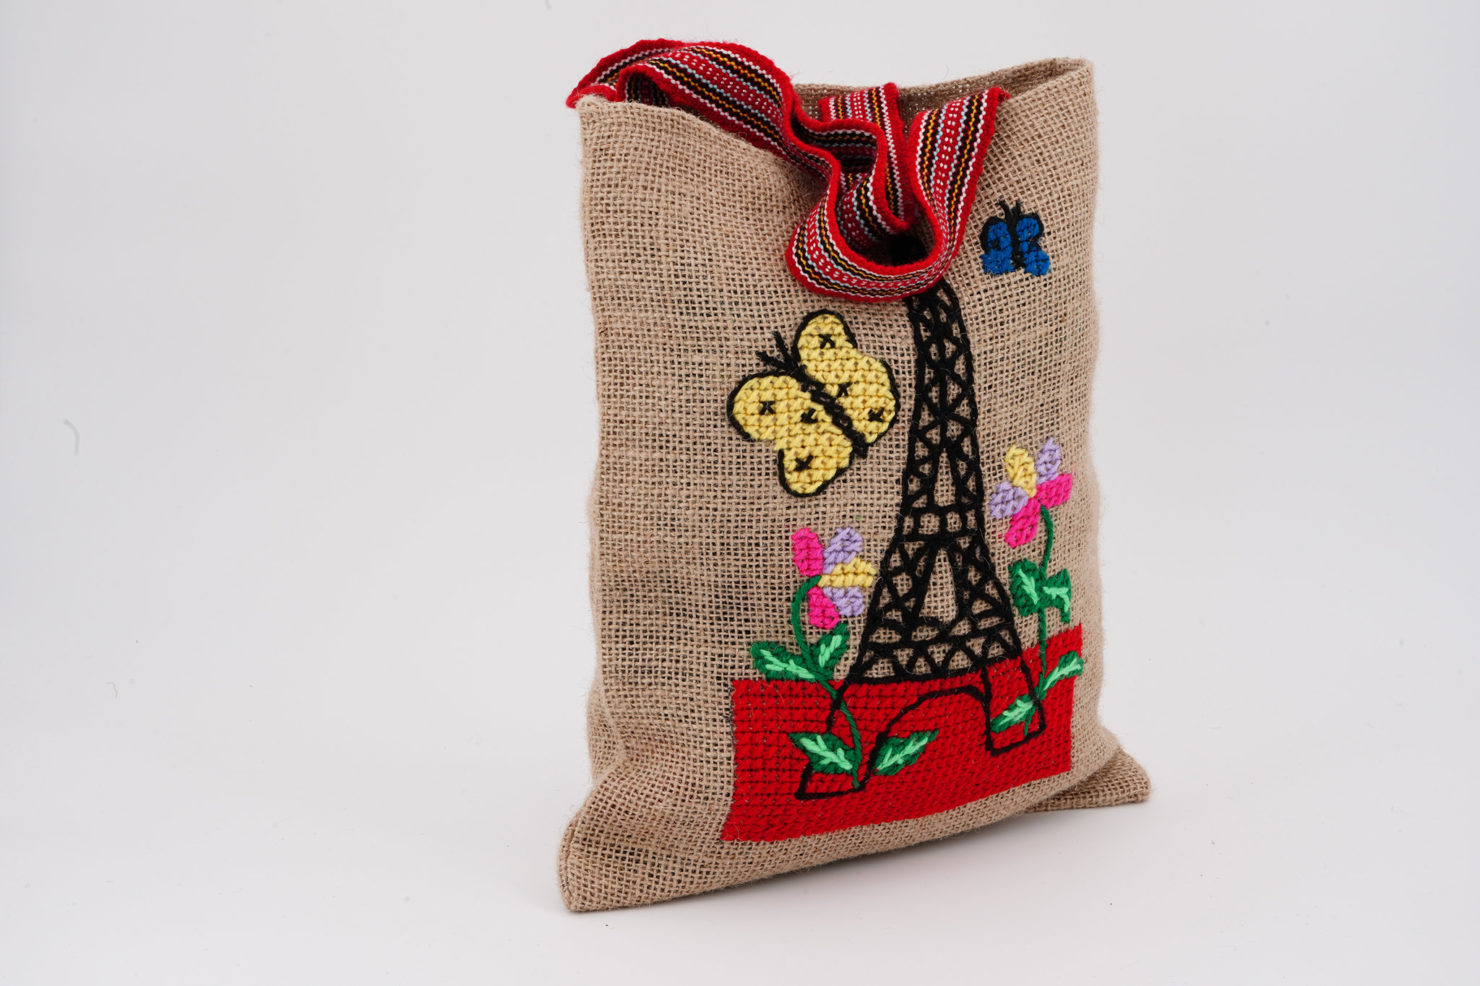 SMALL EIFFEL TOWER BAG PO PARIS